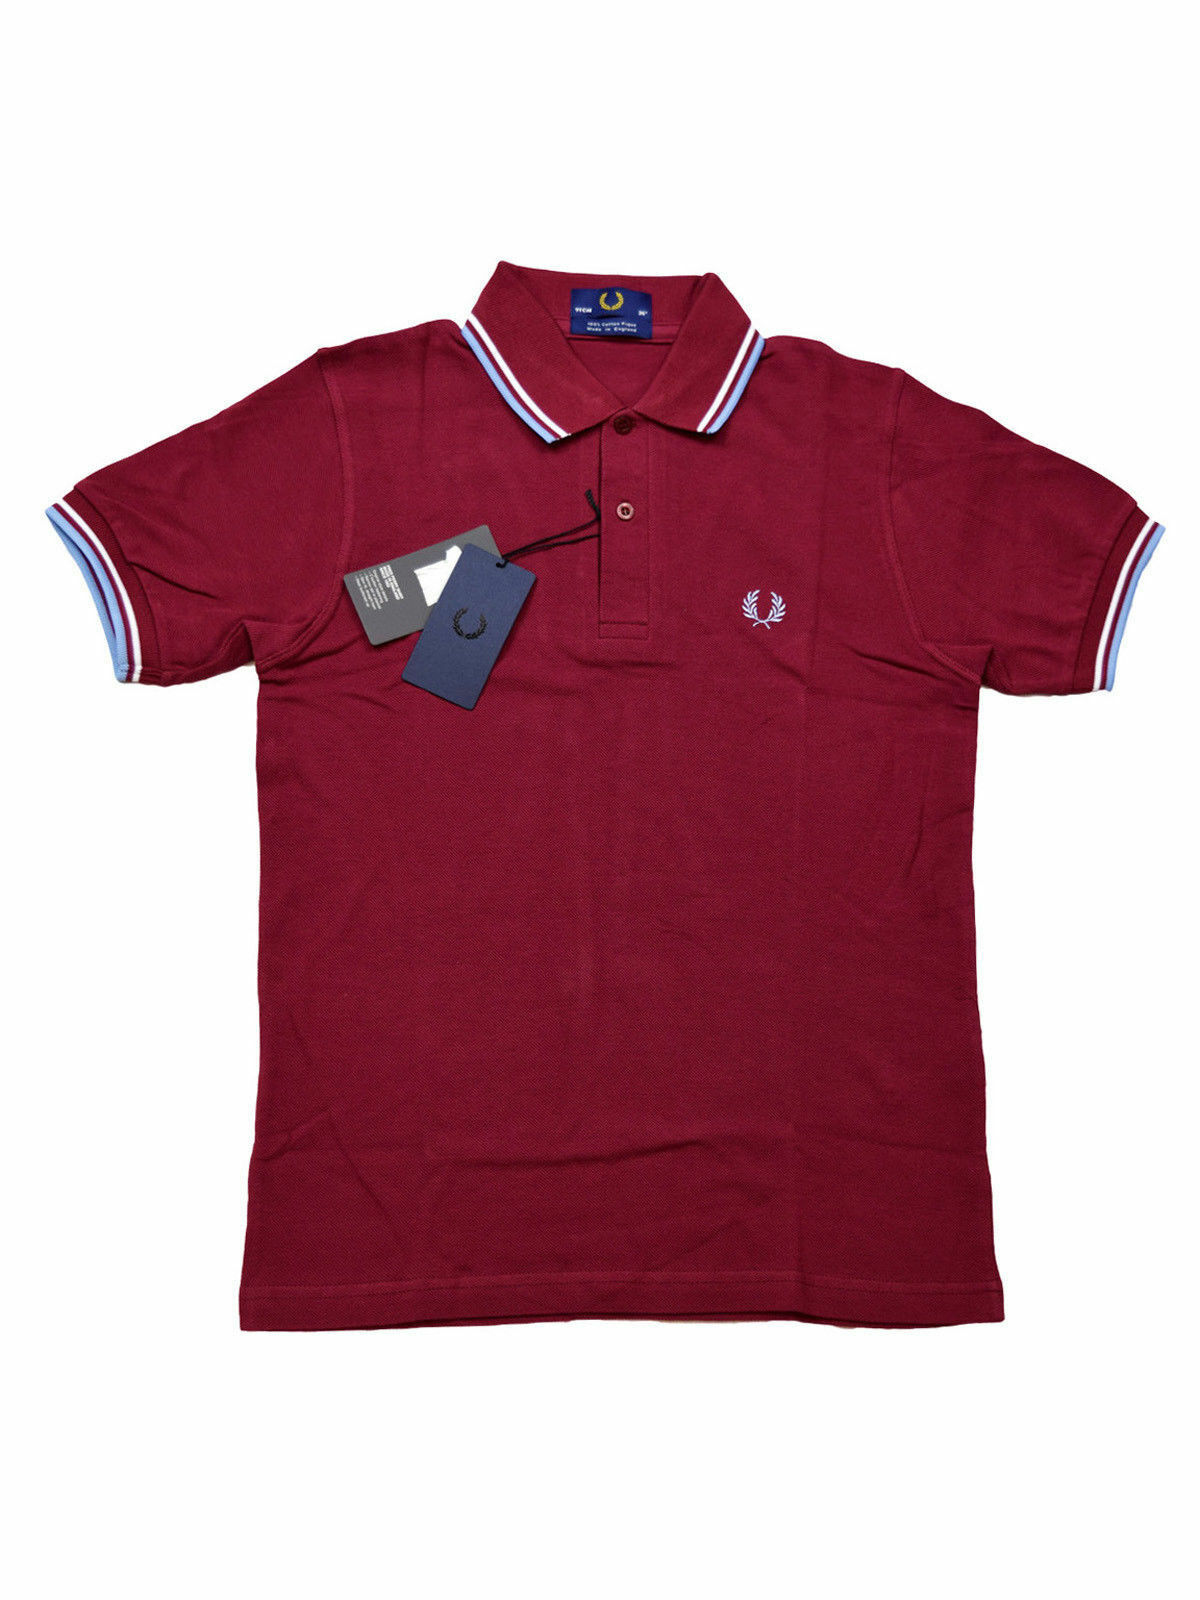 Frot Perry Polo Shirt M12 106 Made In England Bordeaux   Weiß   Hellblau   5444